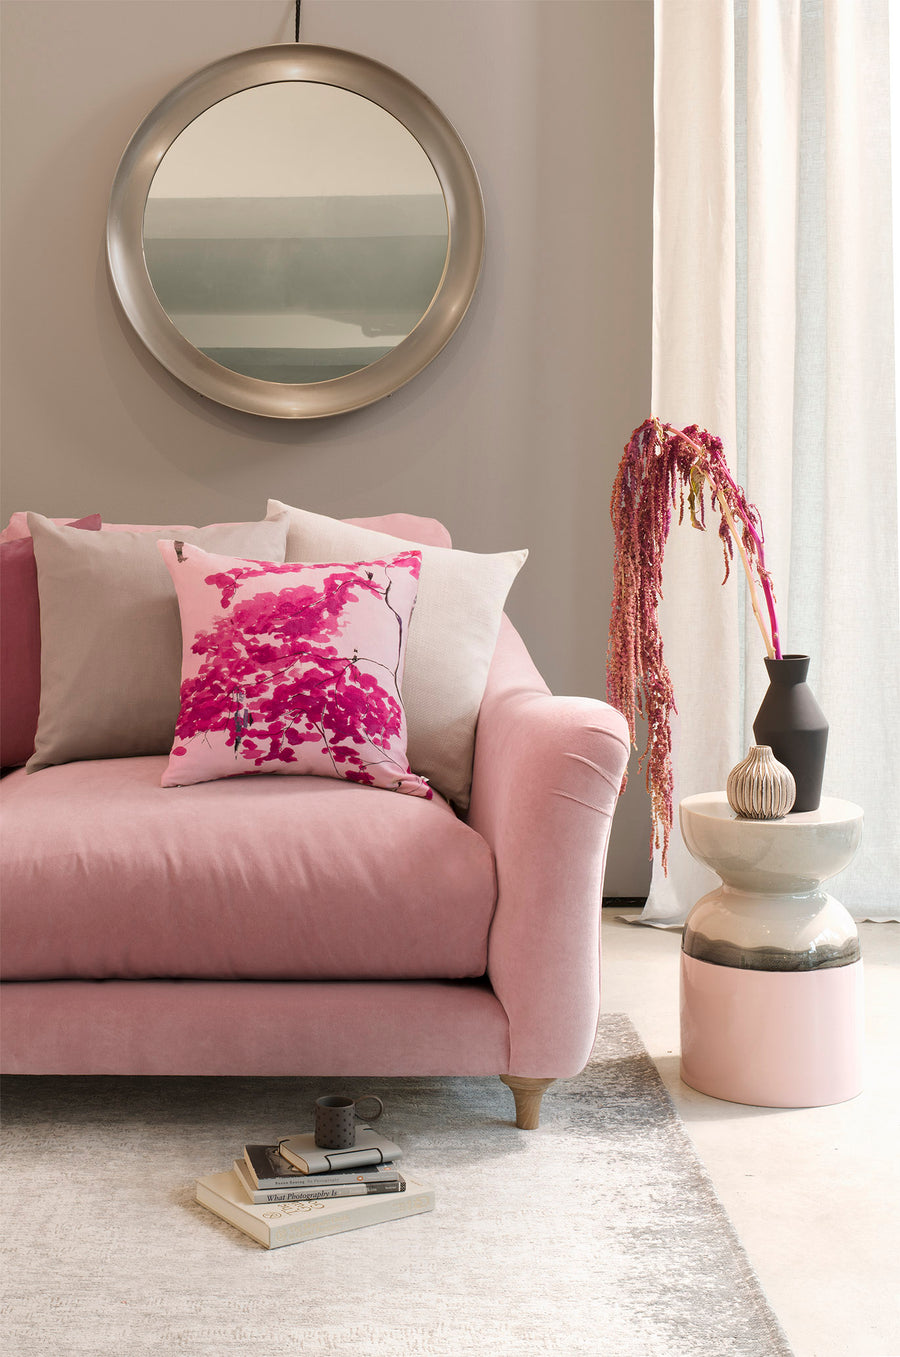 Violet bolster cushion - Chinese Tree in Pink and Violet bolster by Anna Jacobs